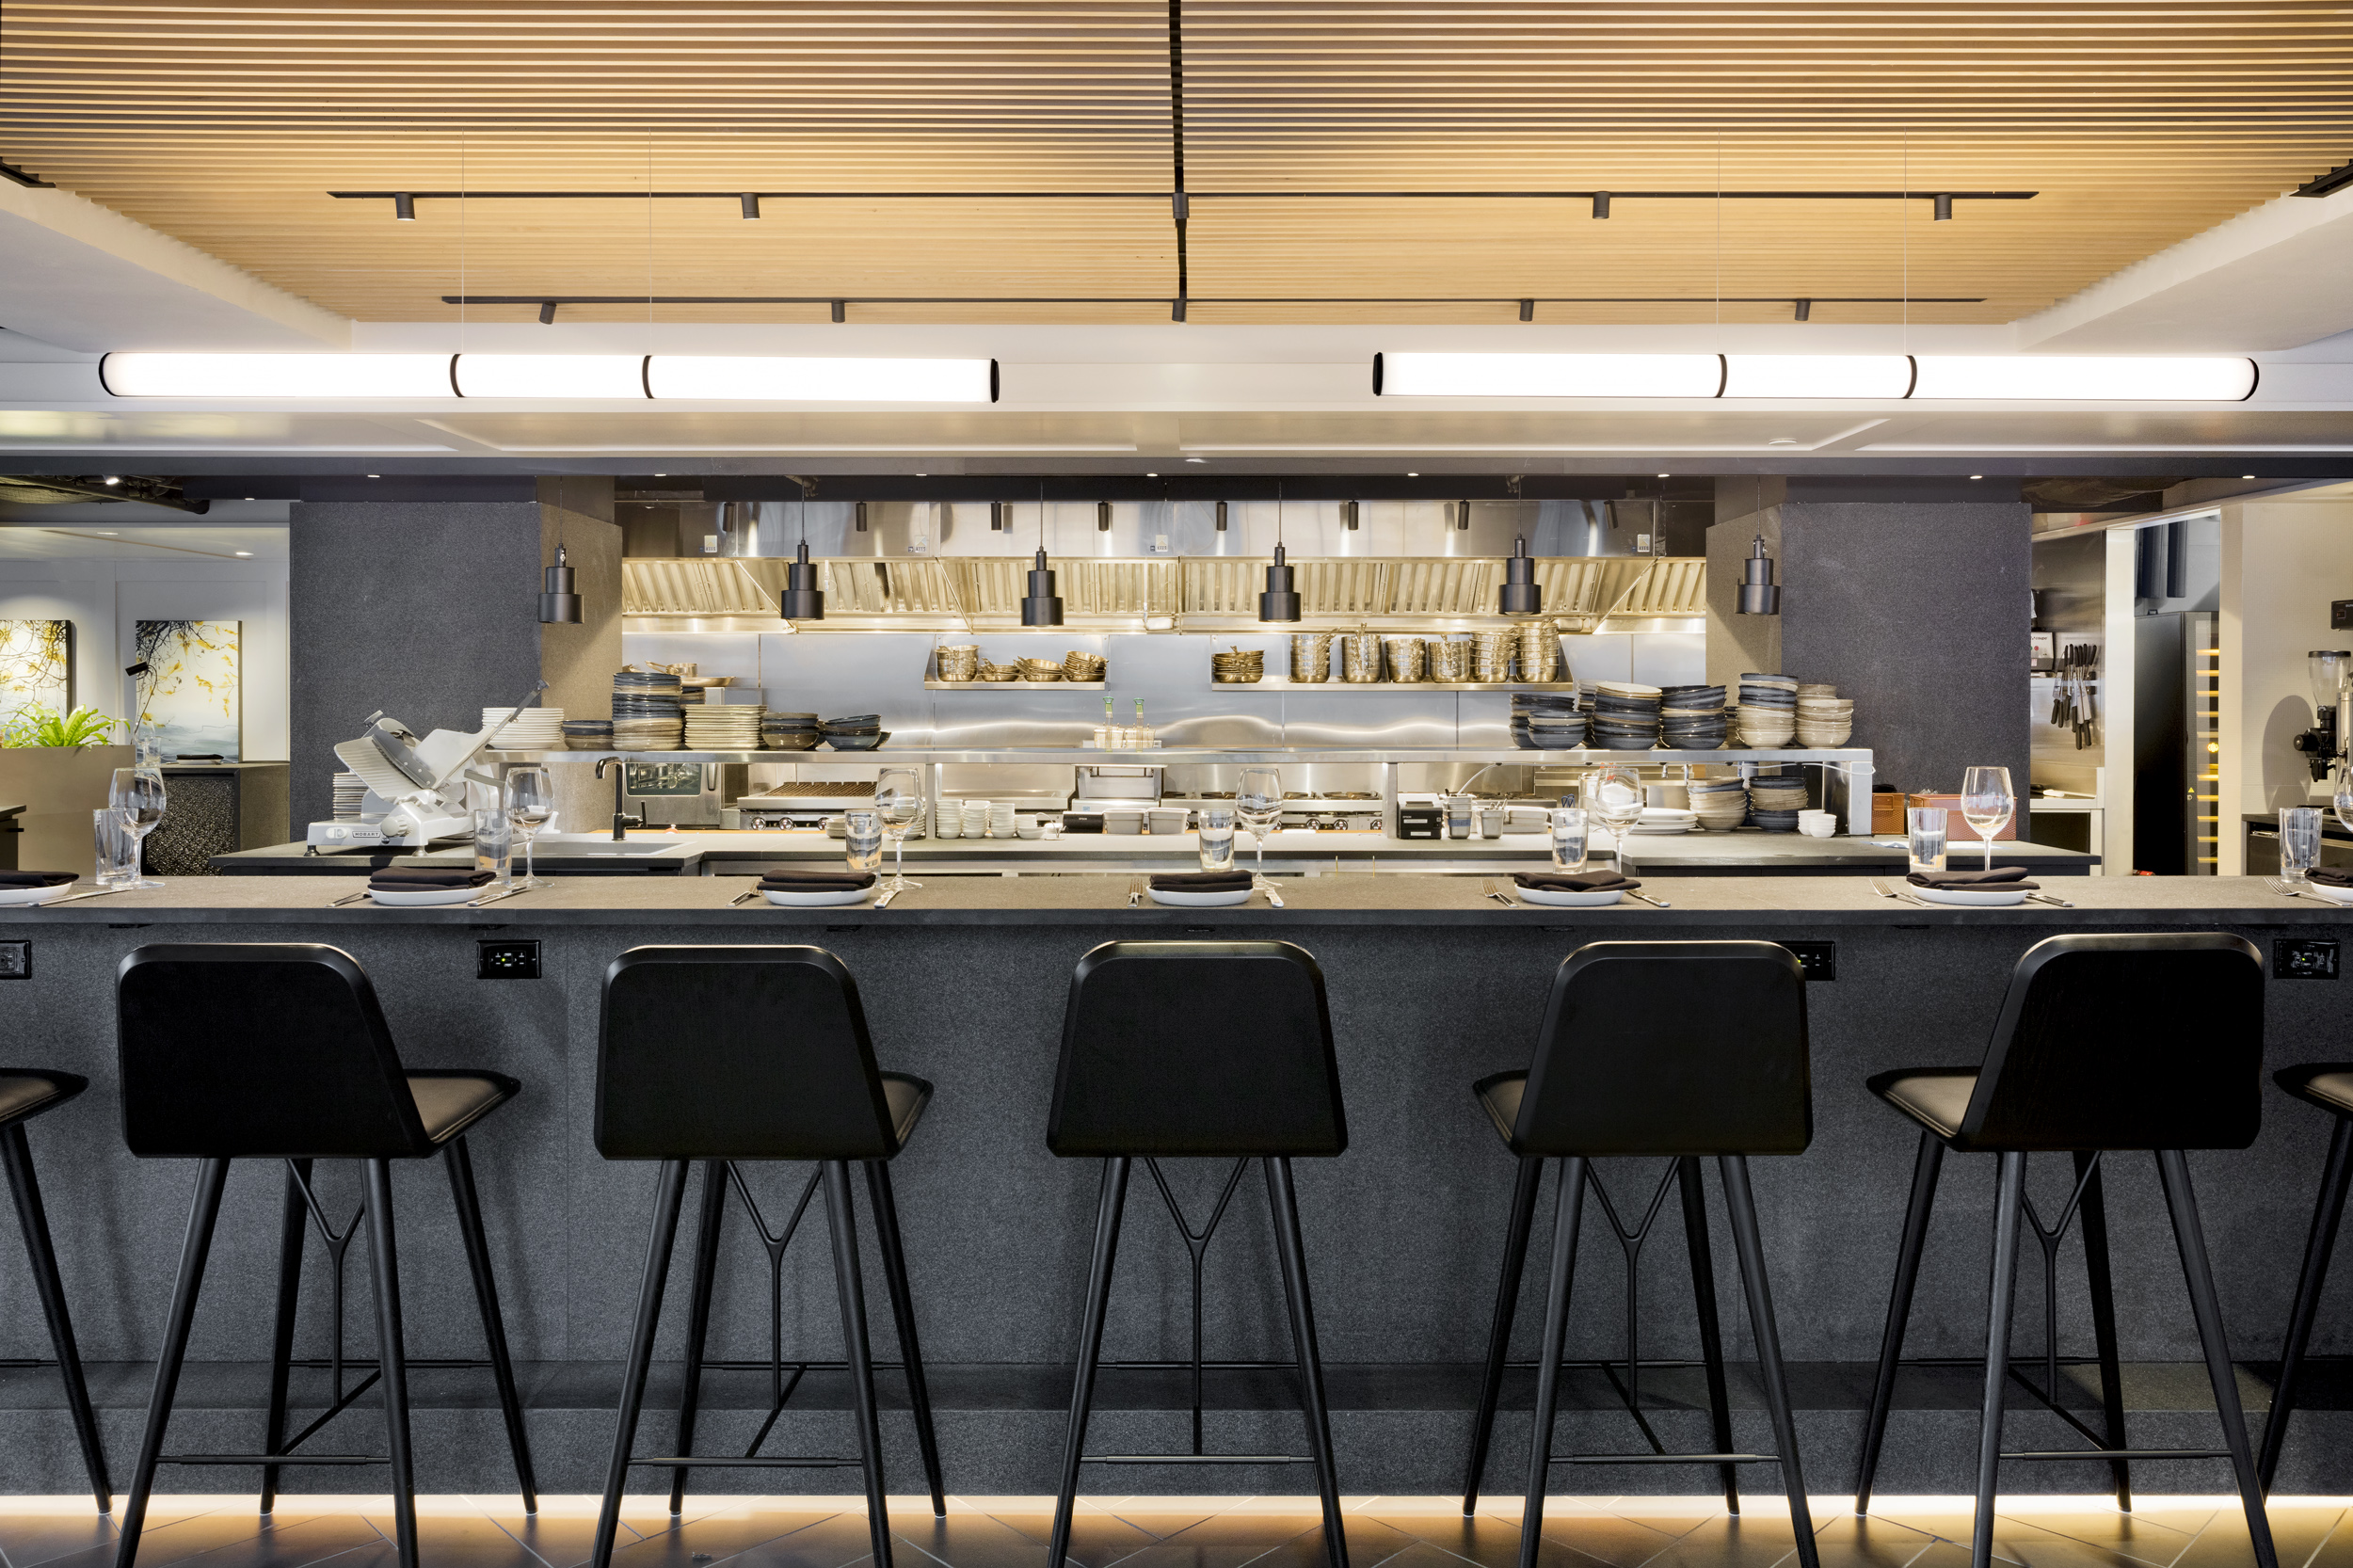 Wolf's open kitchen with black stool seating